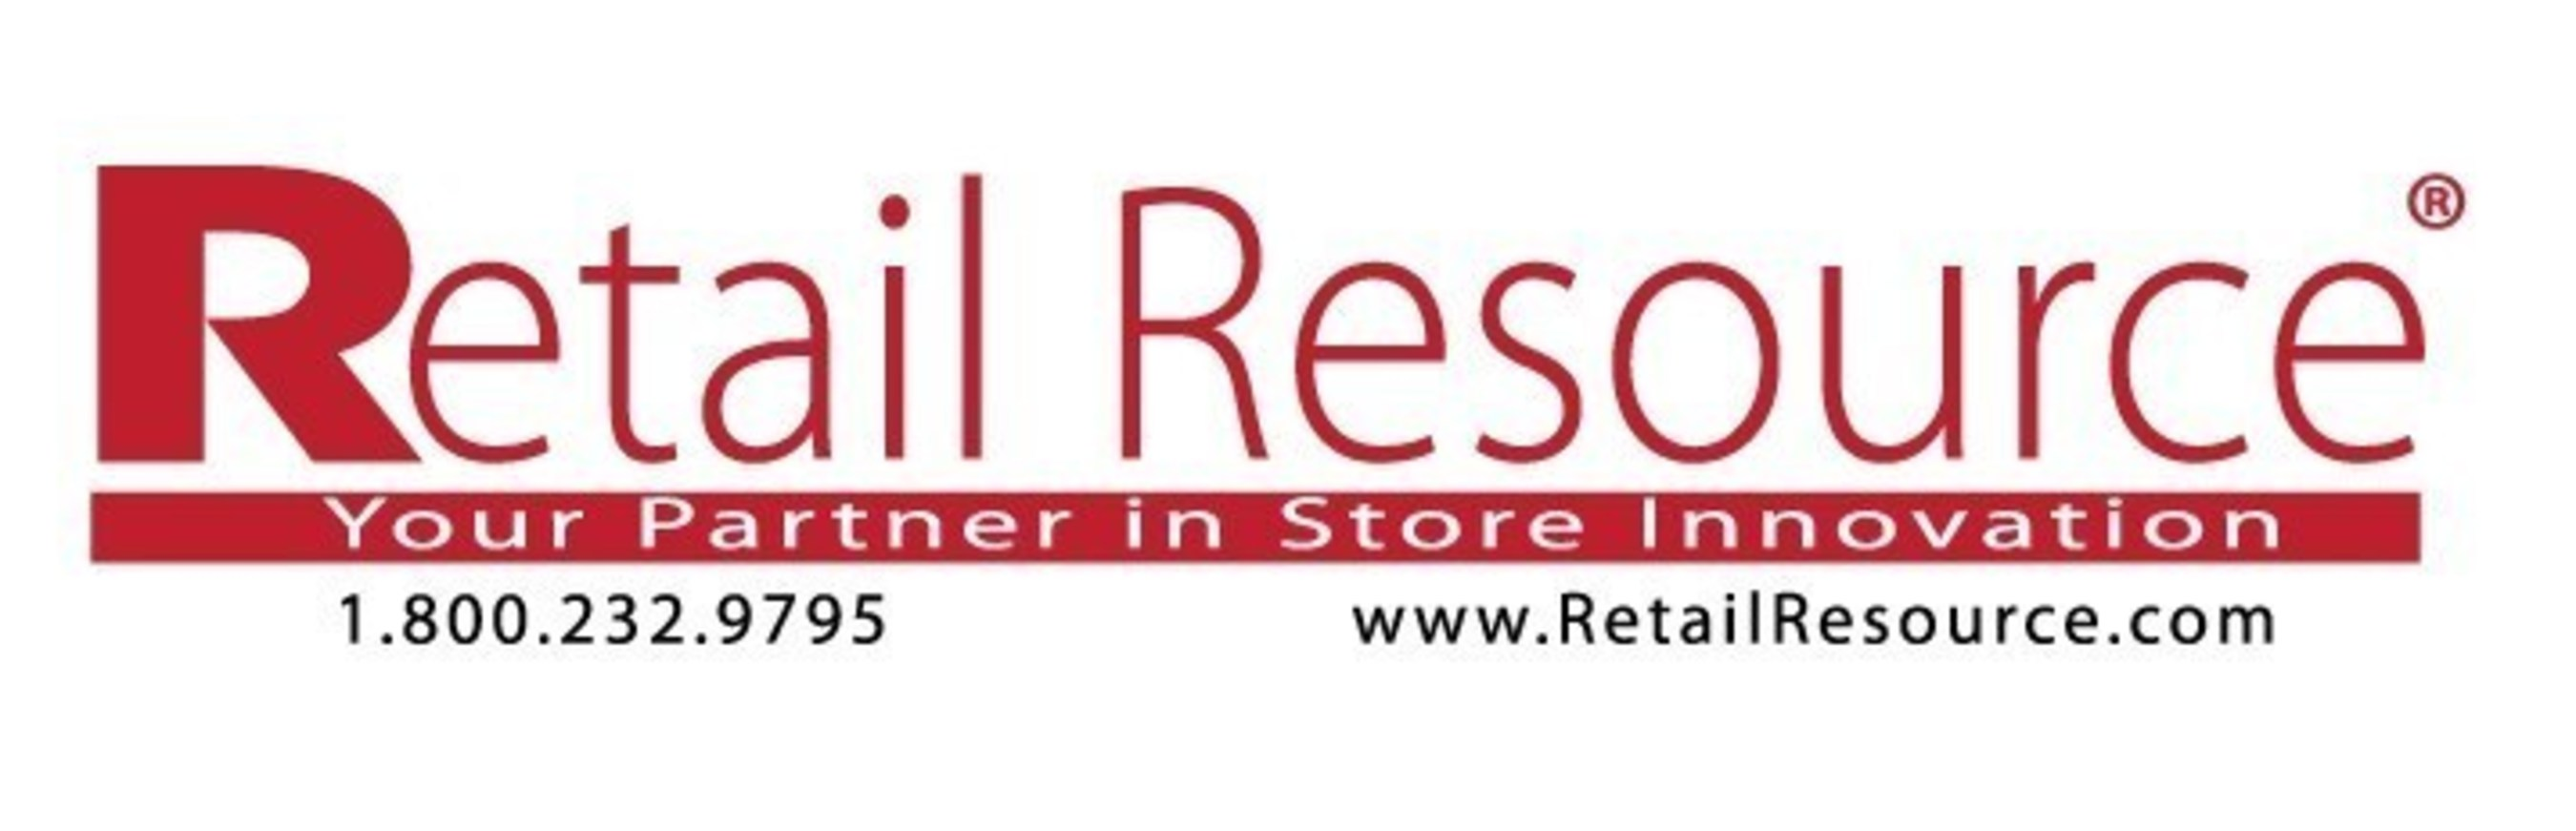 Retail Resource website now recognized as Google Trusted Store